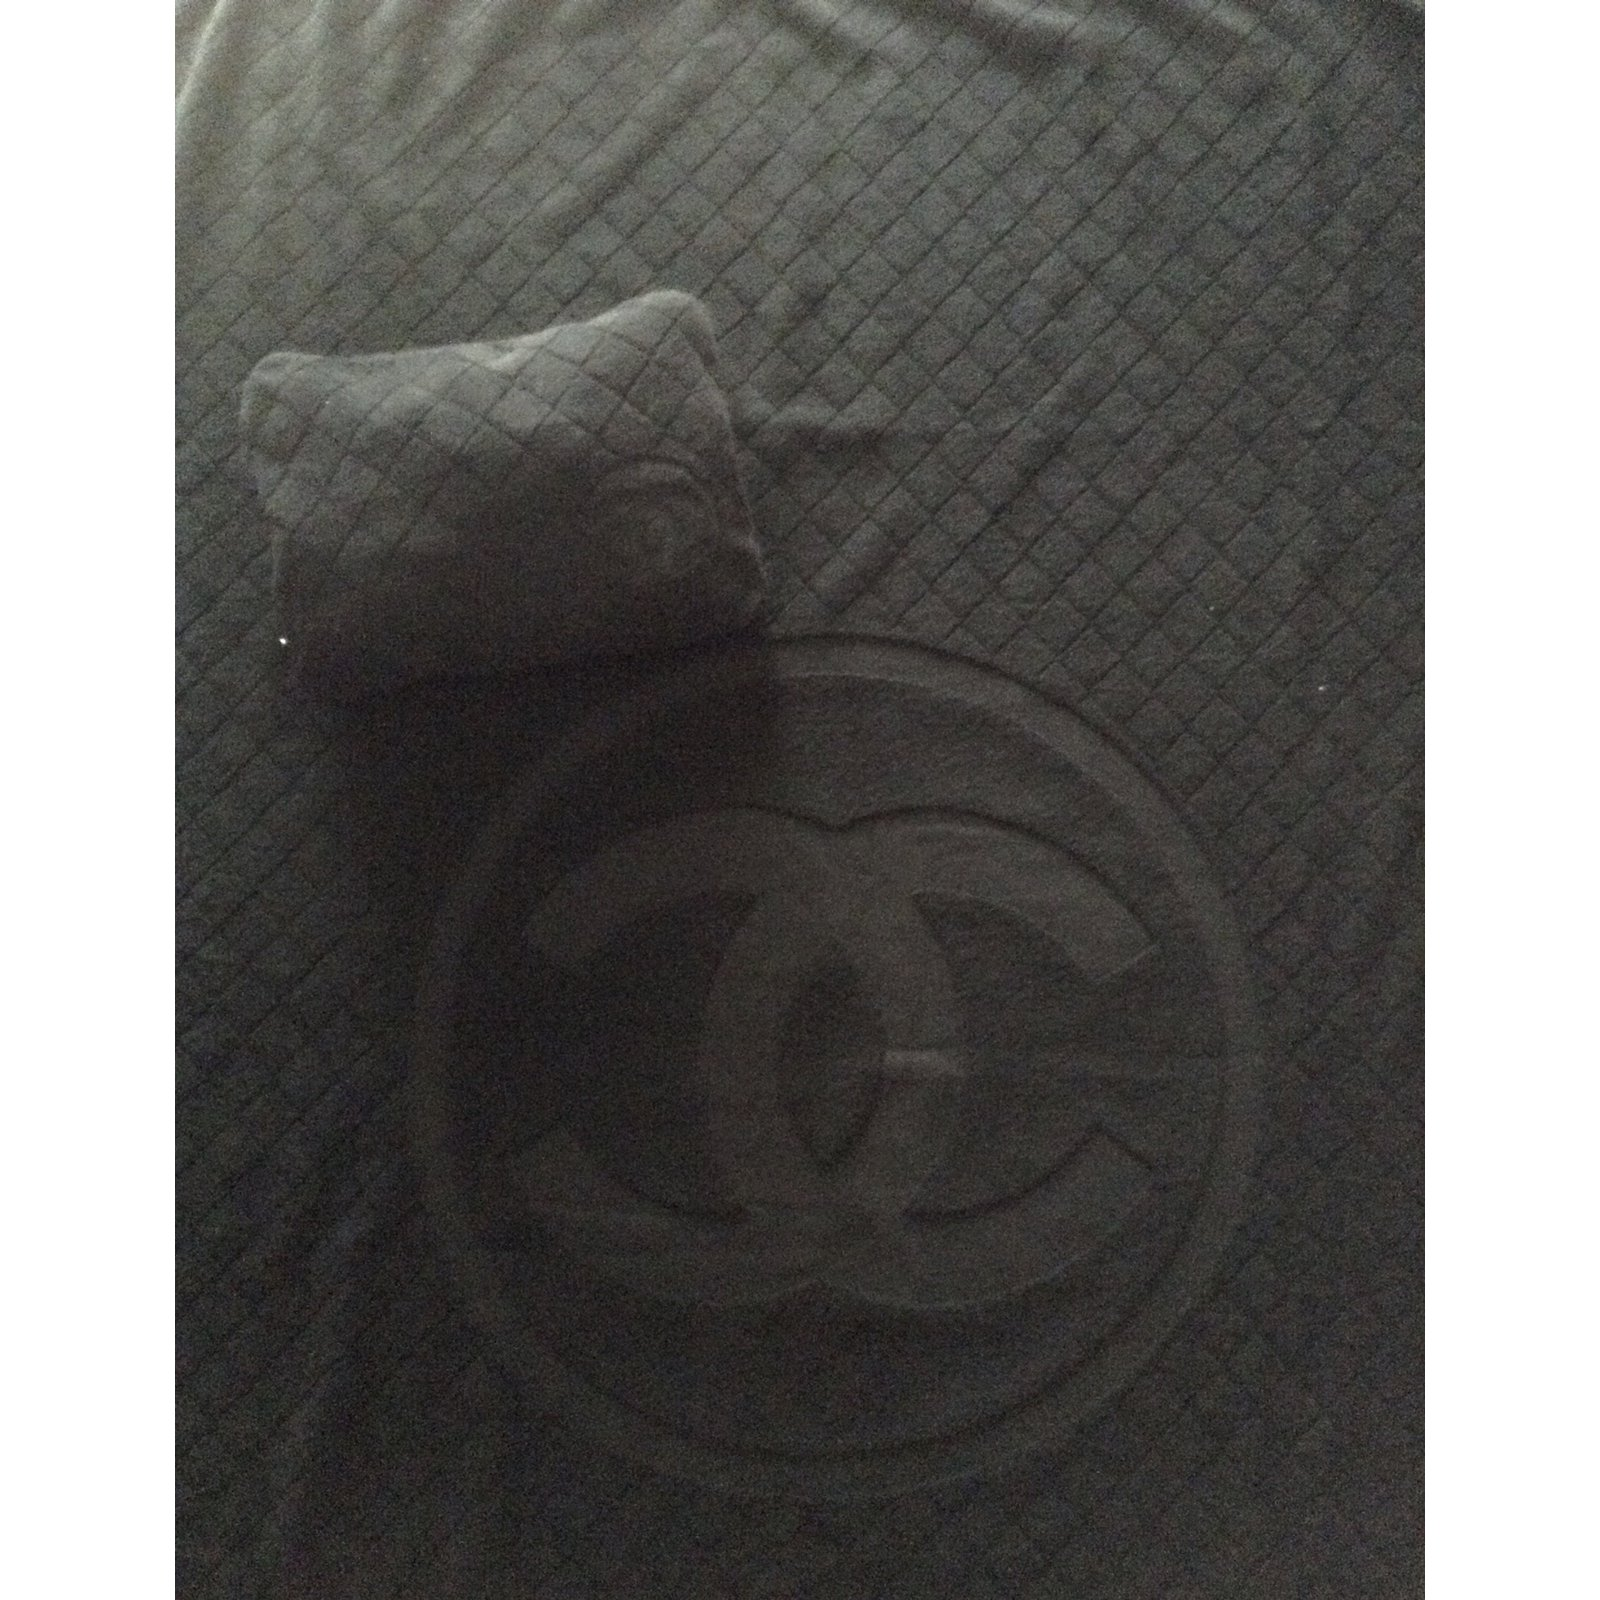 V tements de bain chanel drap de bain coton noir for Drap housse traduction